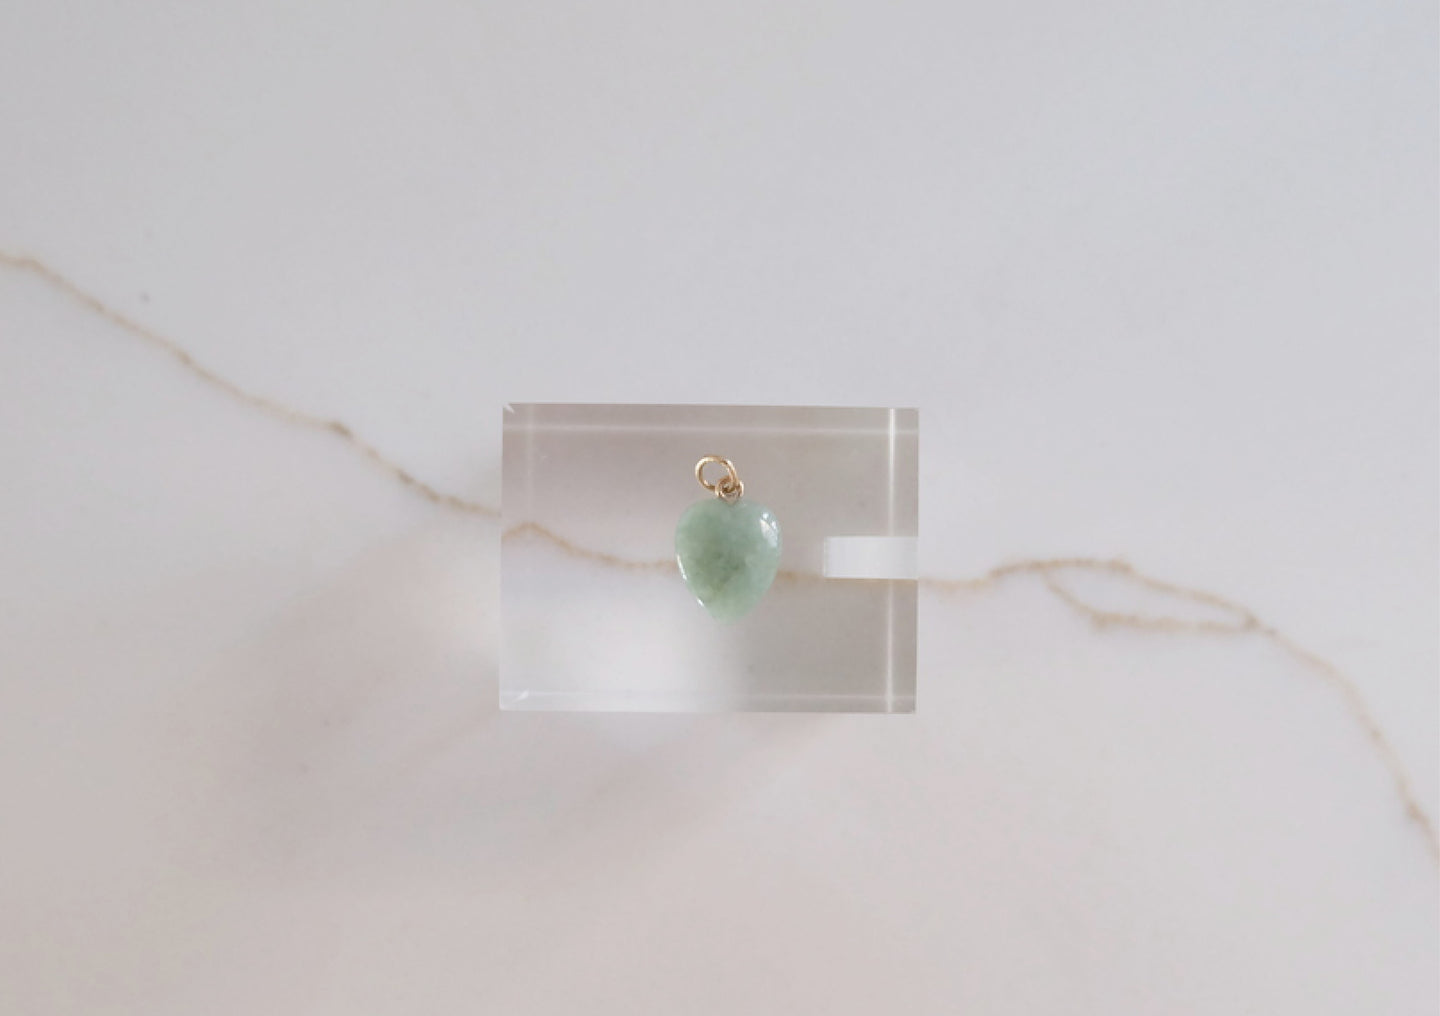 Small Heart-Shaped Green Jadeite Pendant